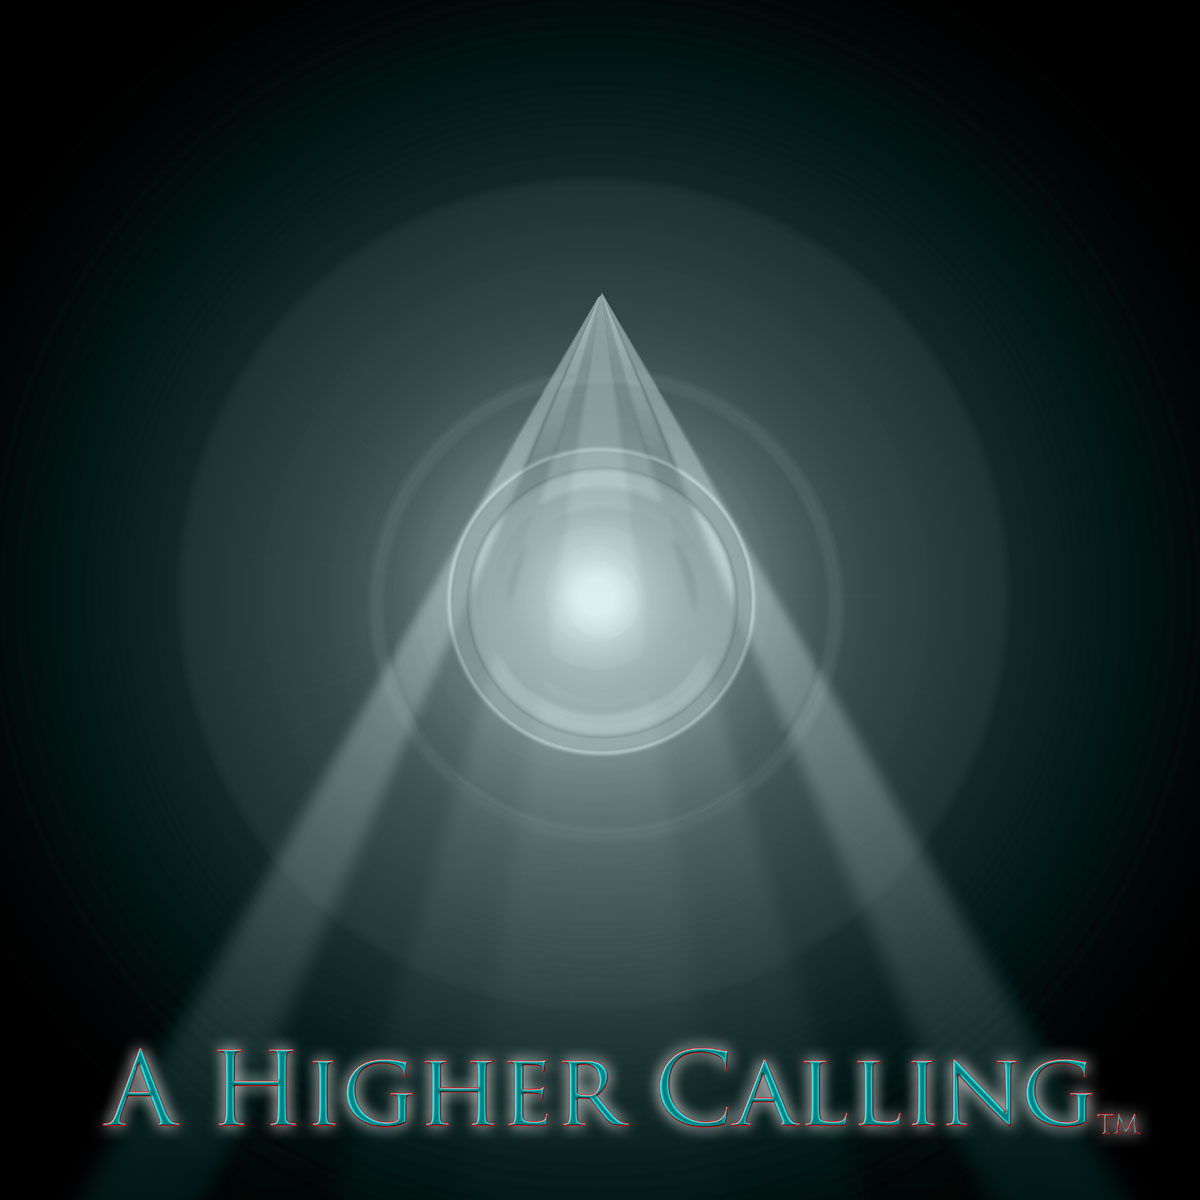 A Higher Calling logo